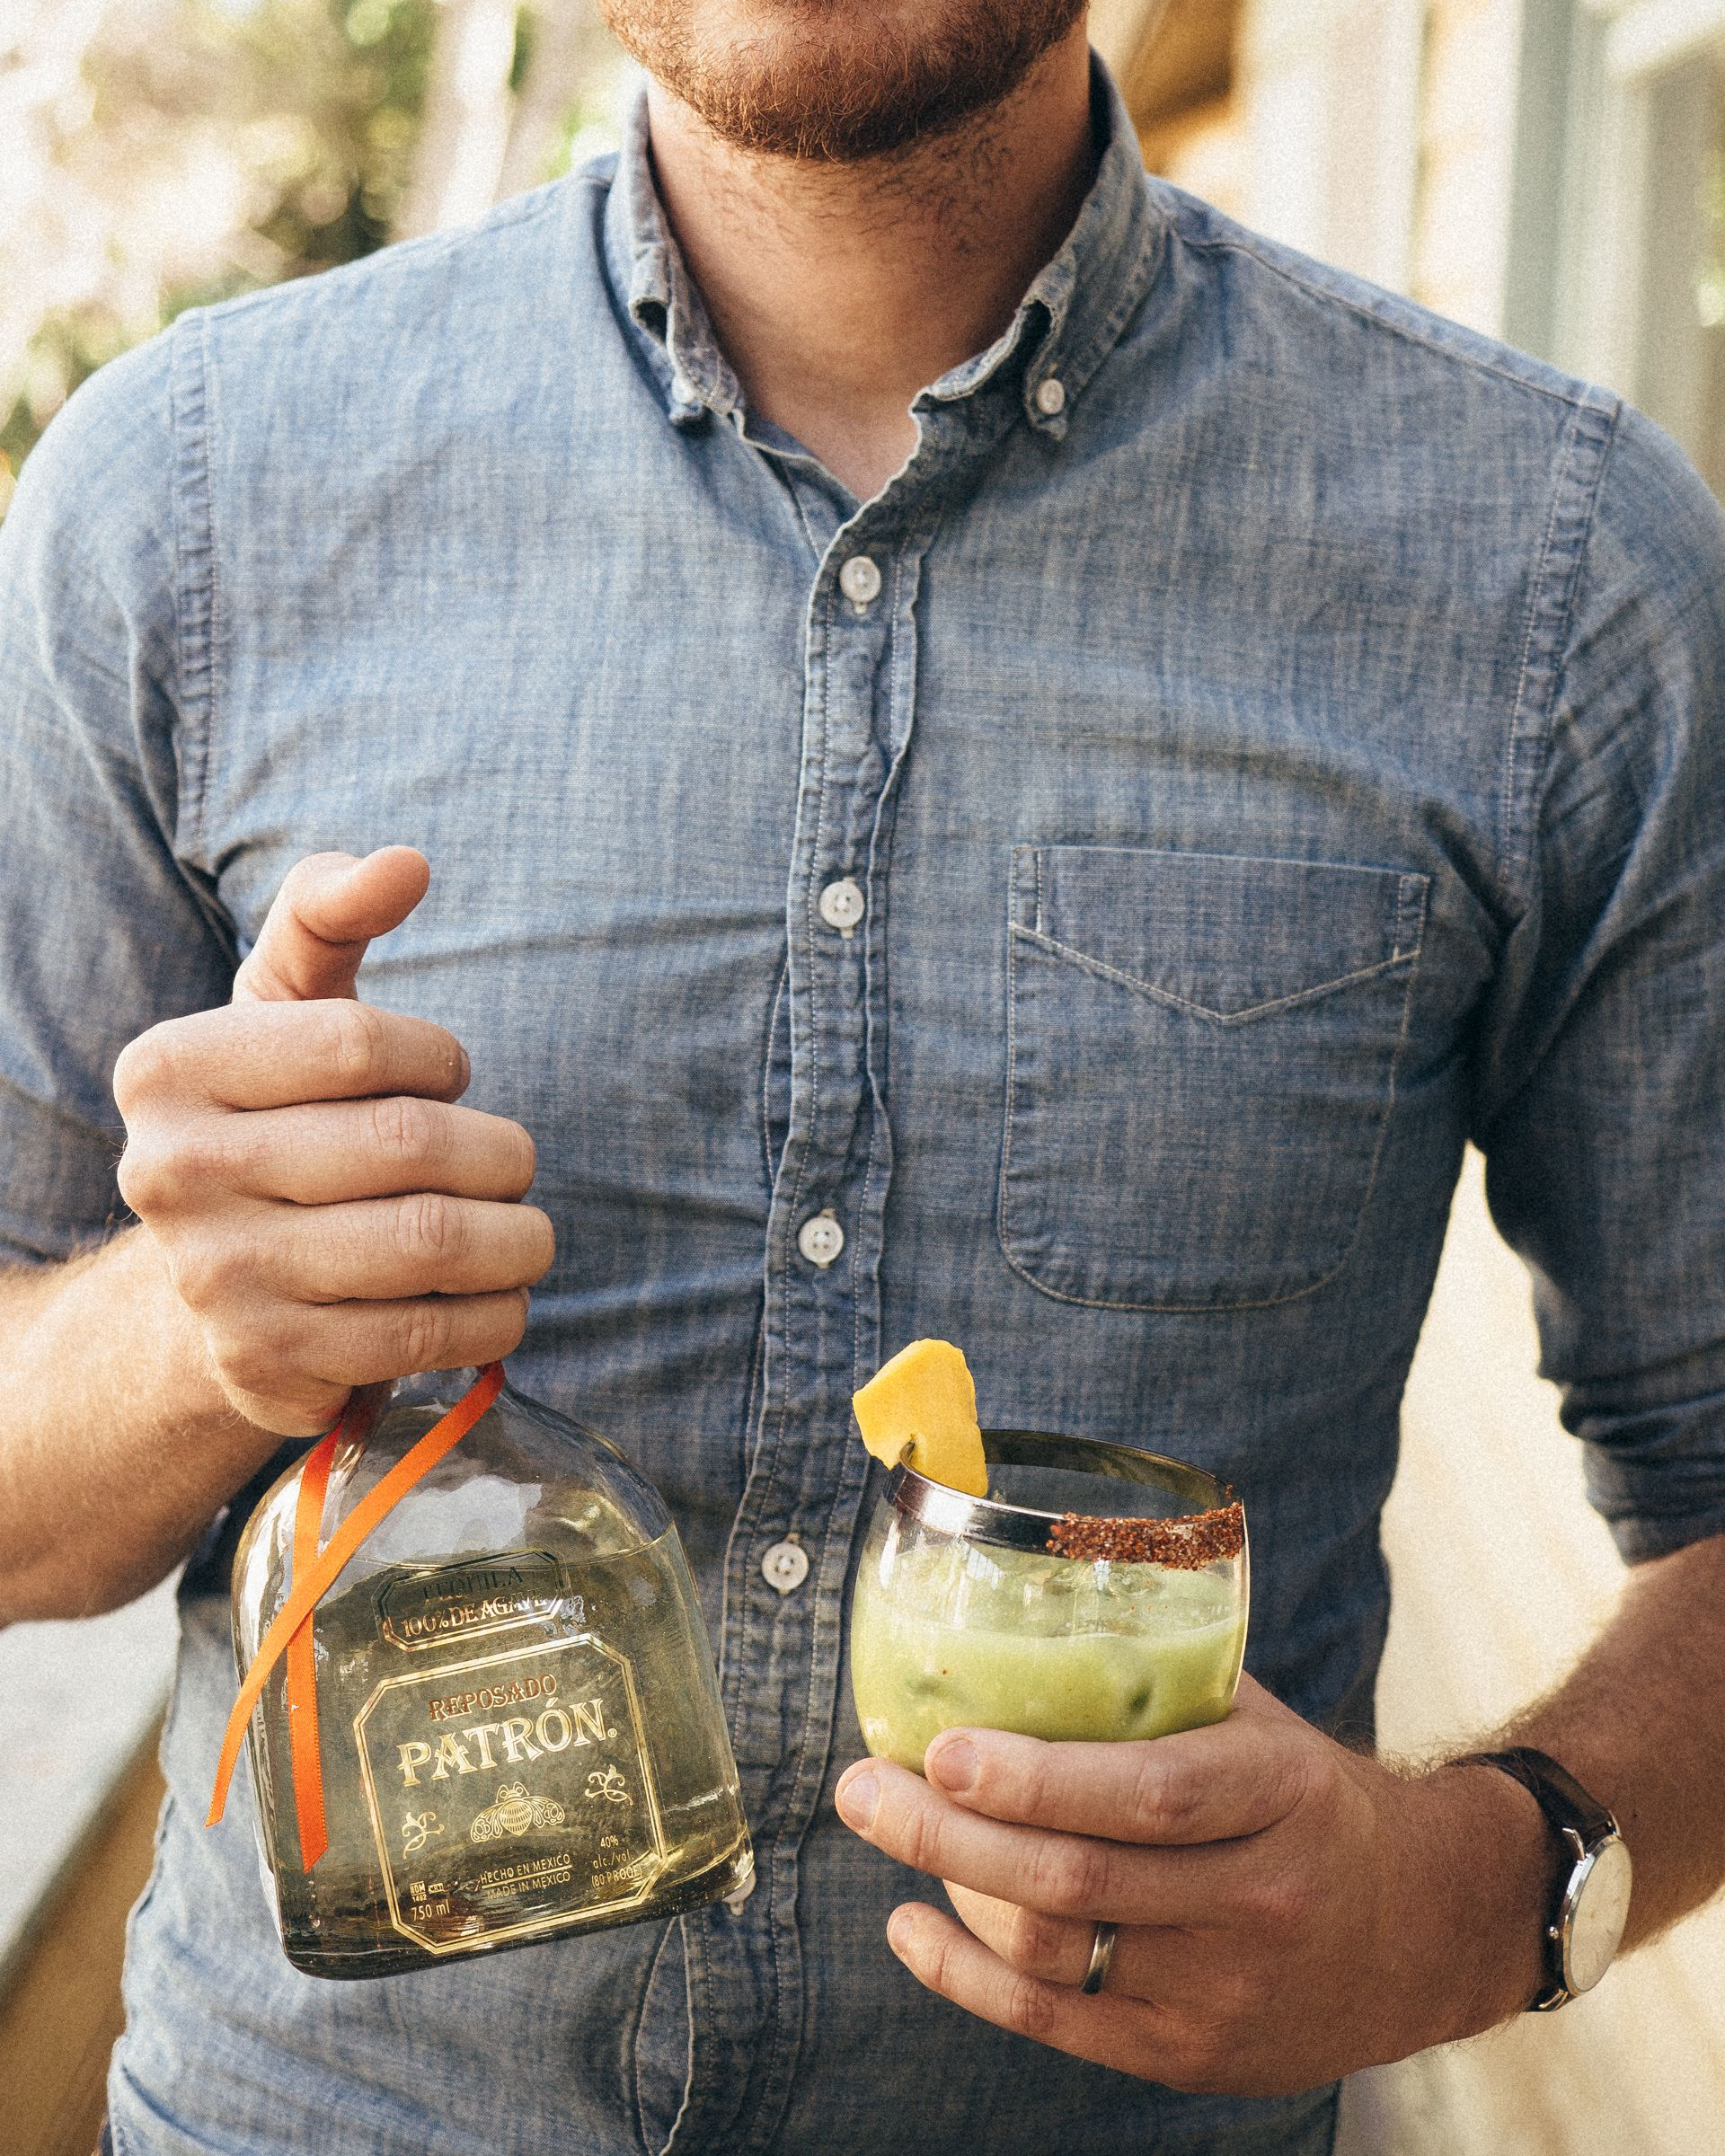 Make the Tropicante Margarita and impress all your friends at your next party like @stayclassic.